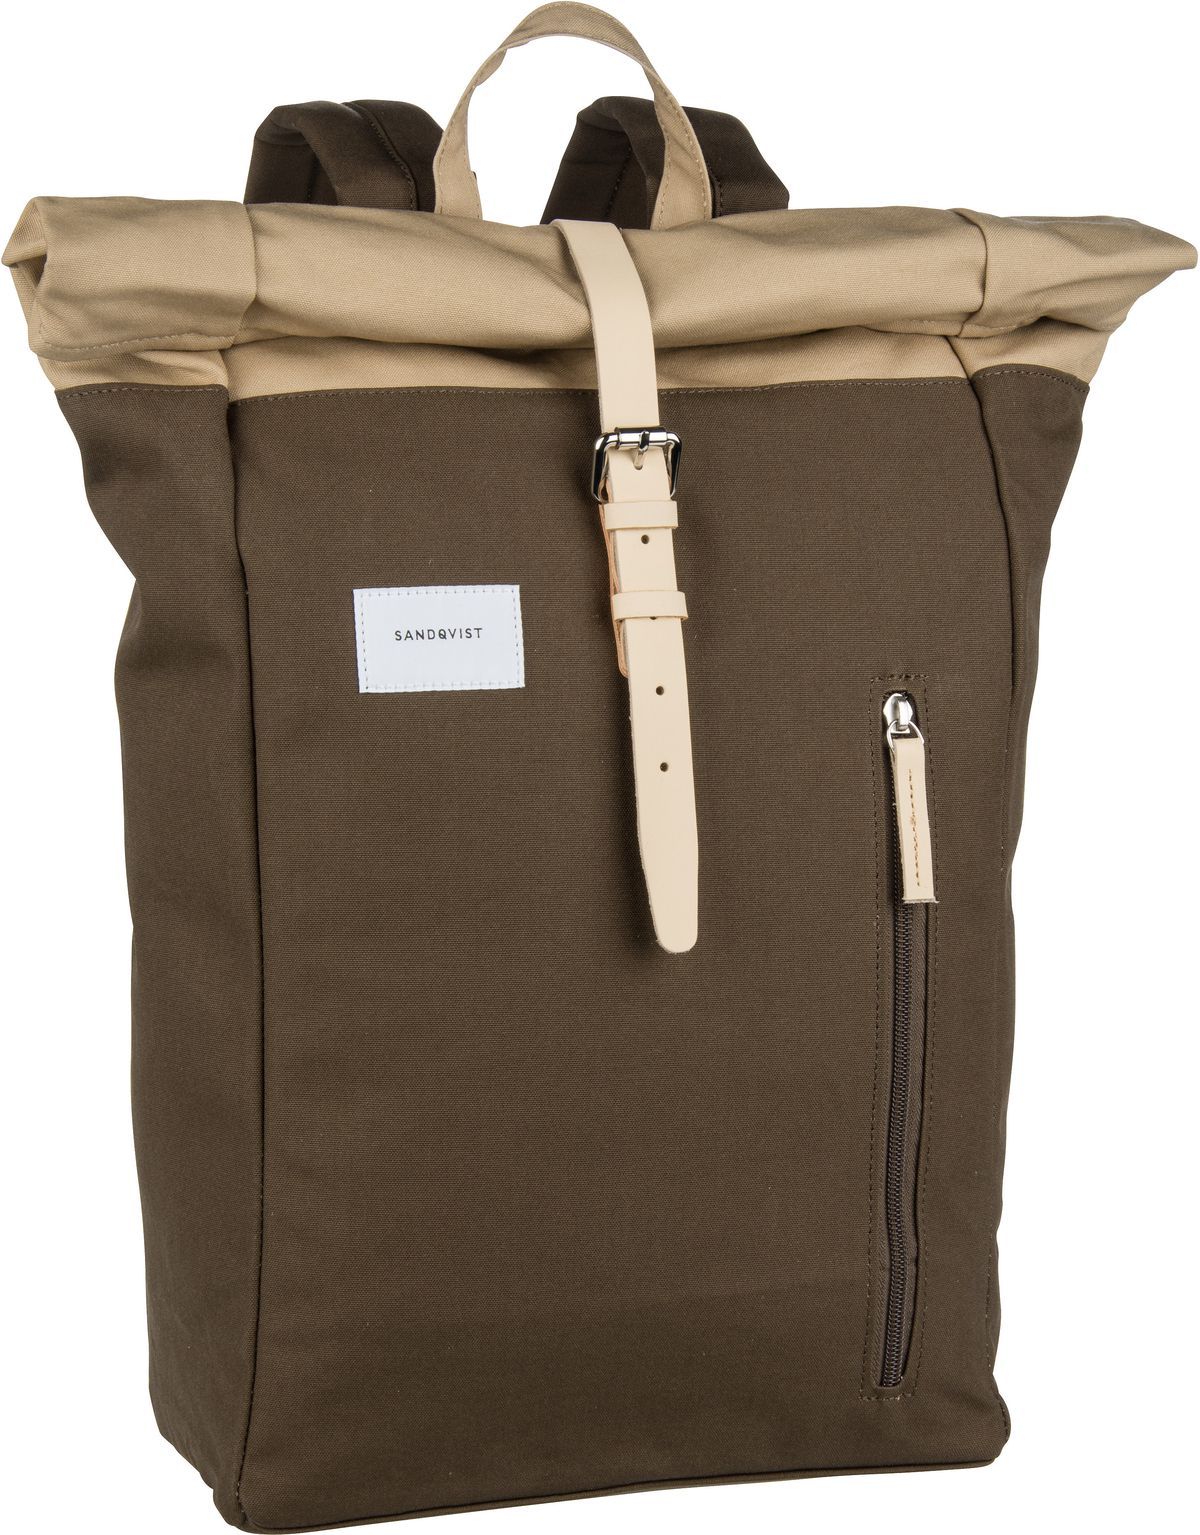 Laptoprucksack Dante Backpack Multi Olive/Natural Leather (18 Liter)